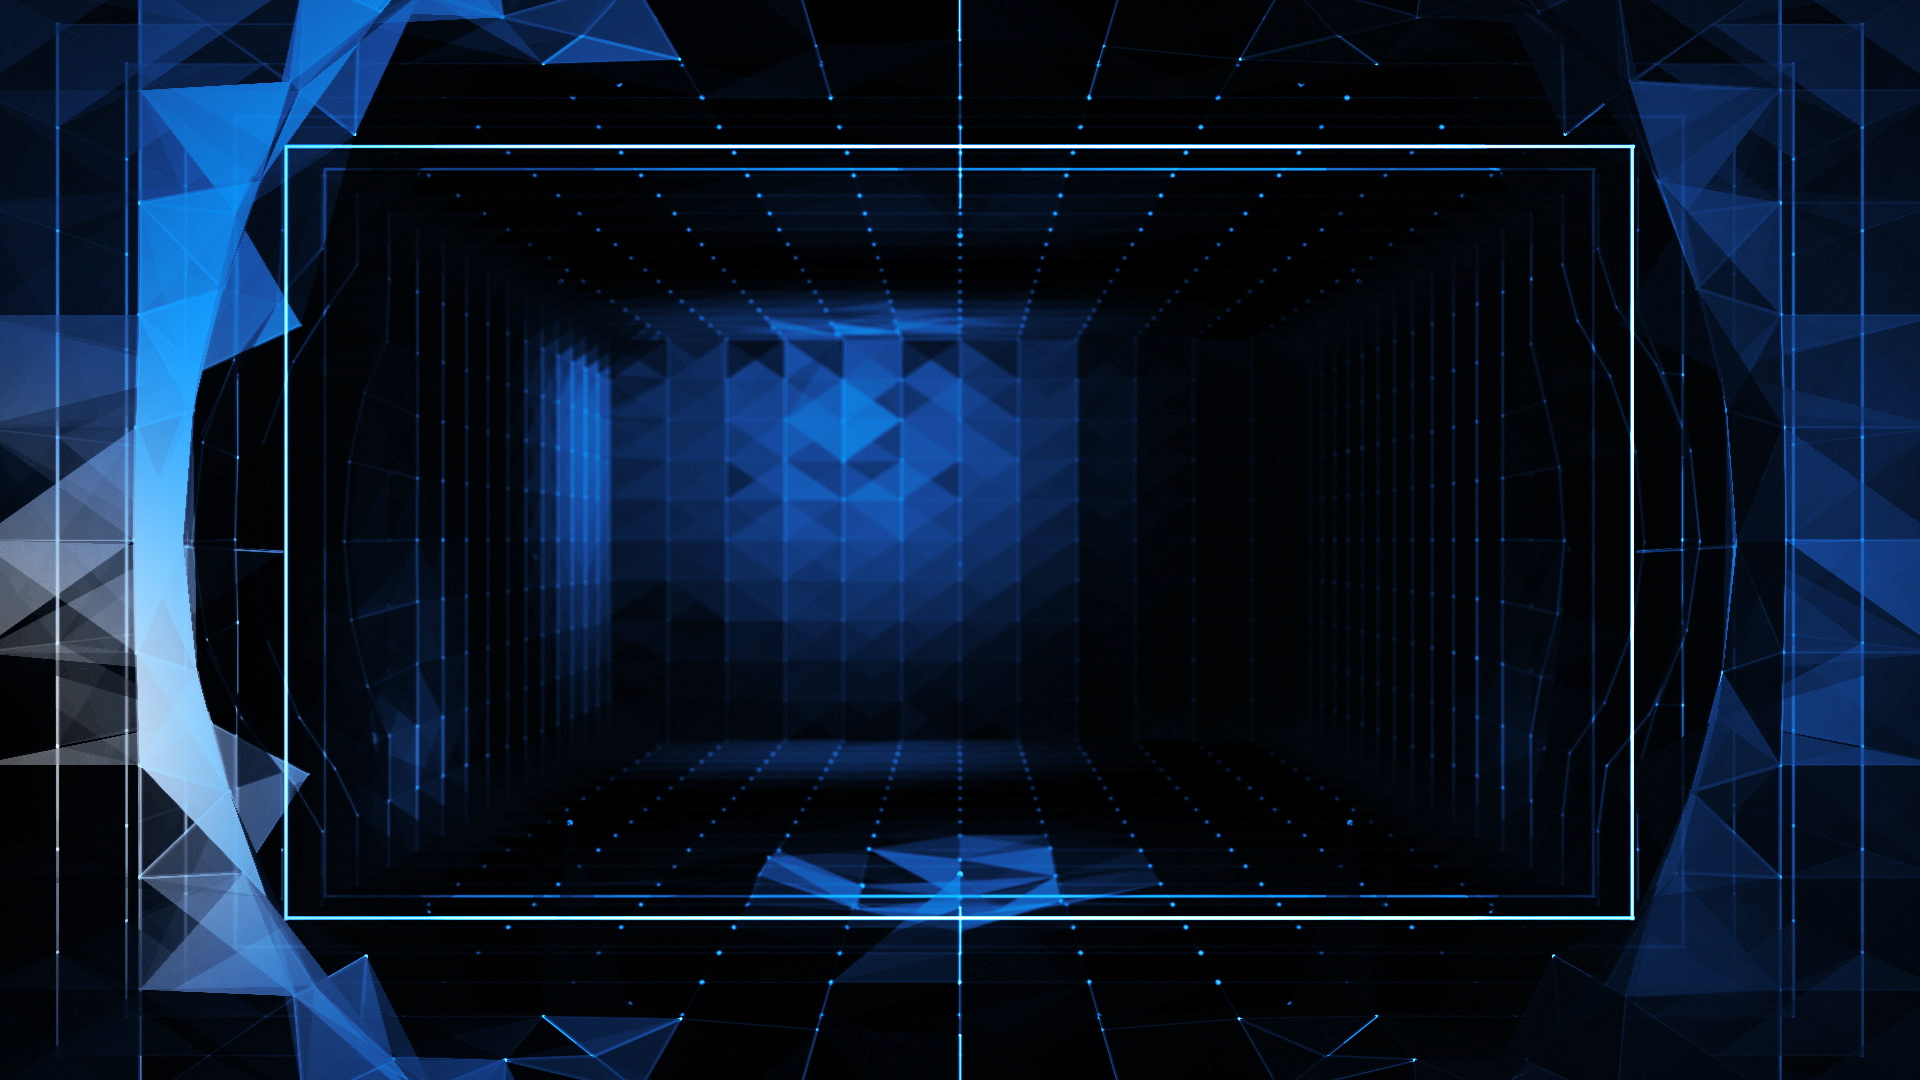 Vj grid room ghosteam vj loops video templates for Grid room